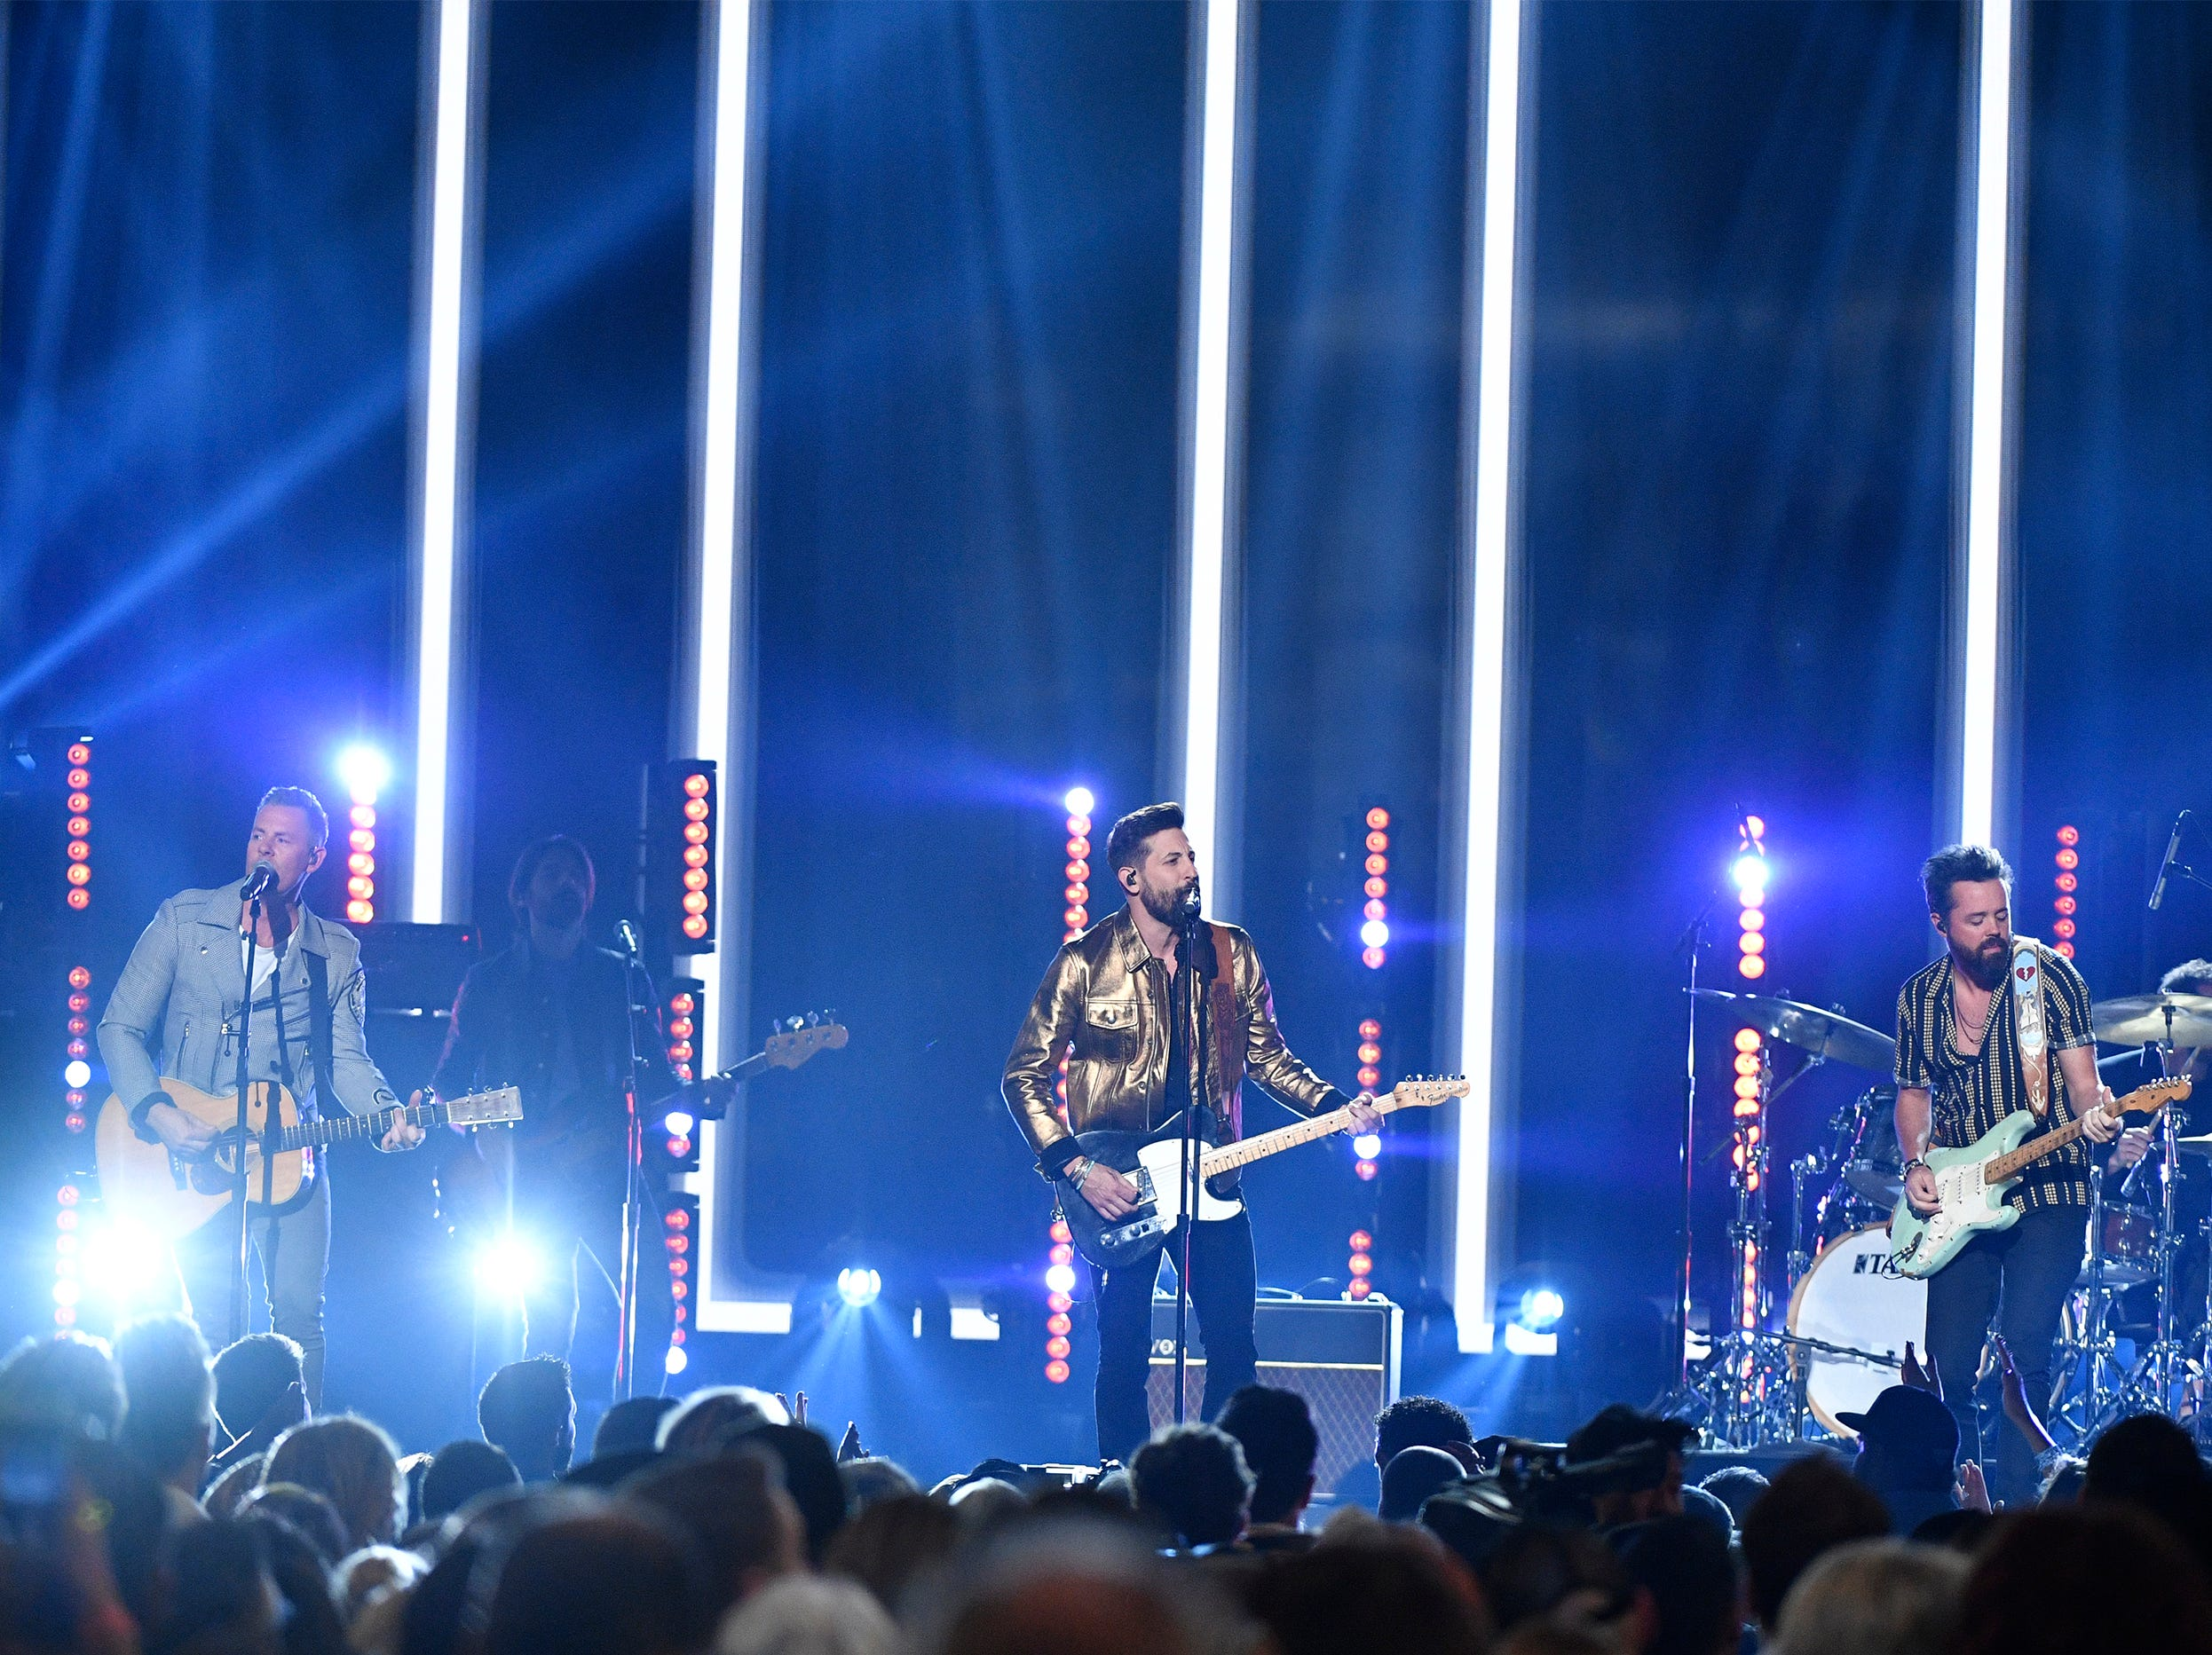 Old Dominion performs during the 54TH Academy of Country Music Awards Sunday, April 7, 2019, in Las Vegas, Nev.